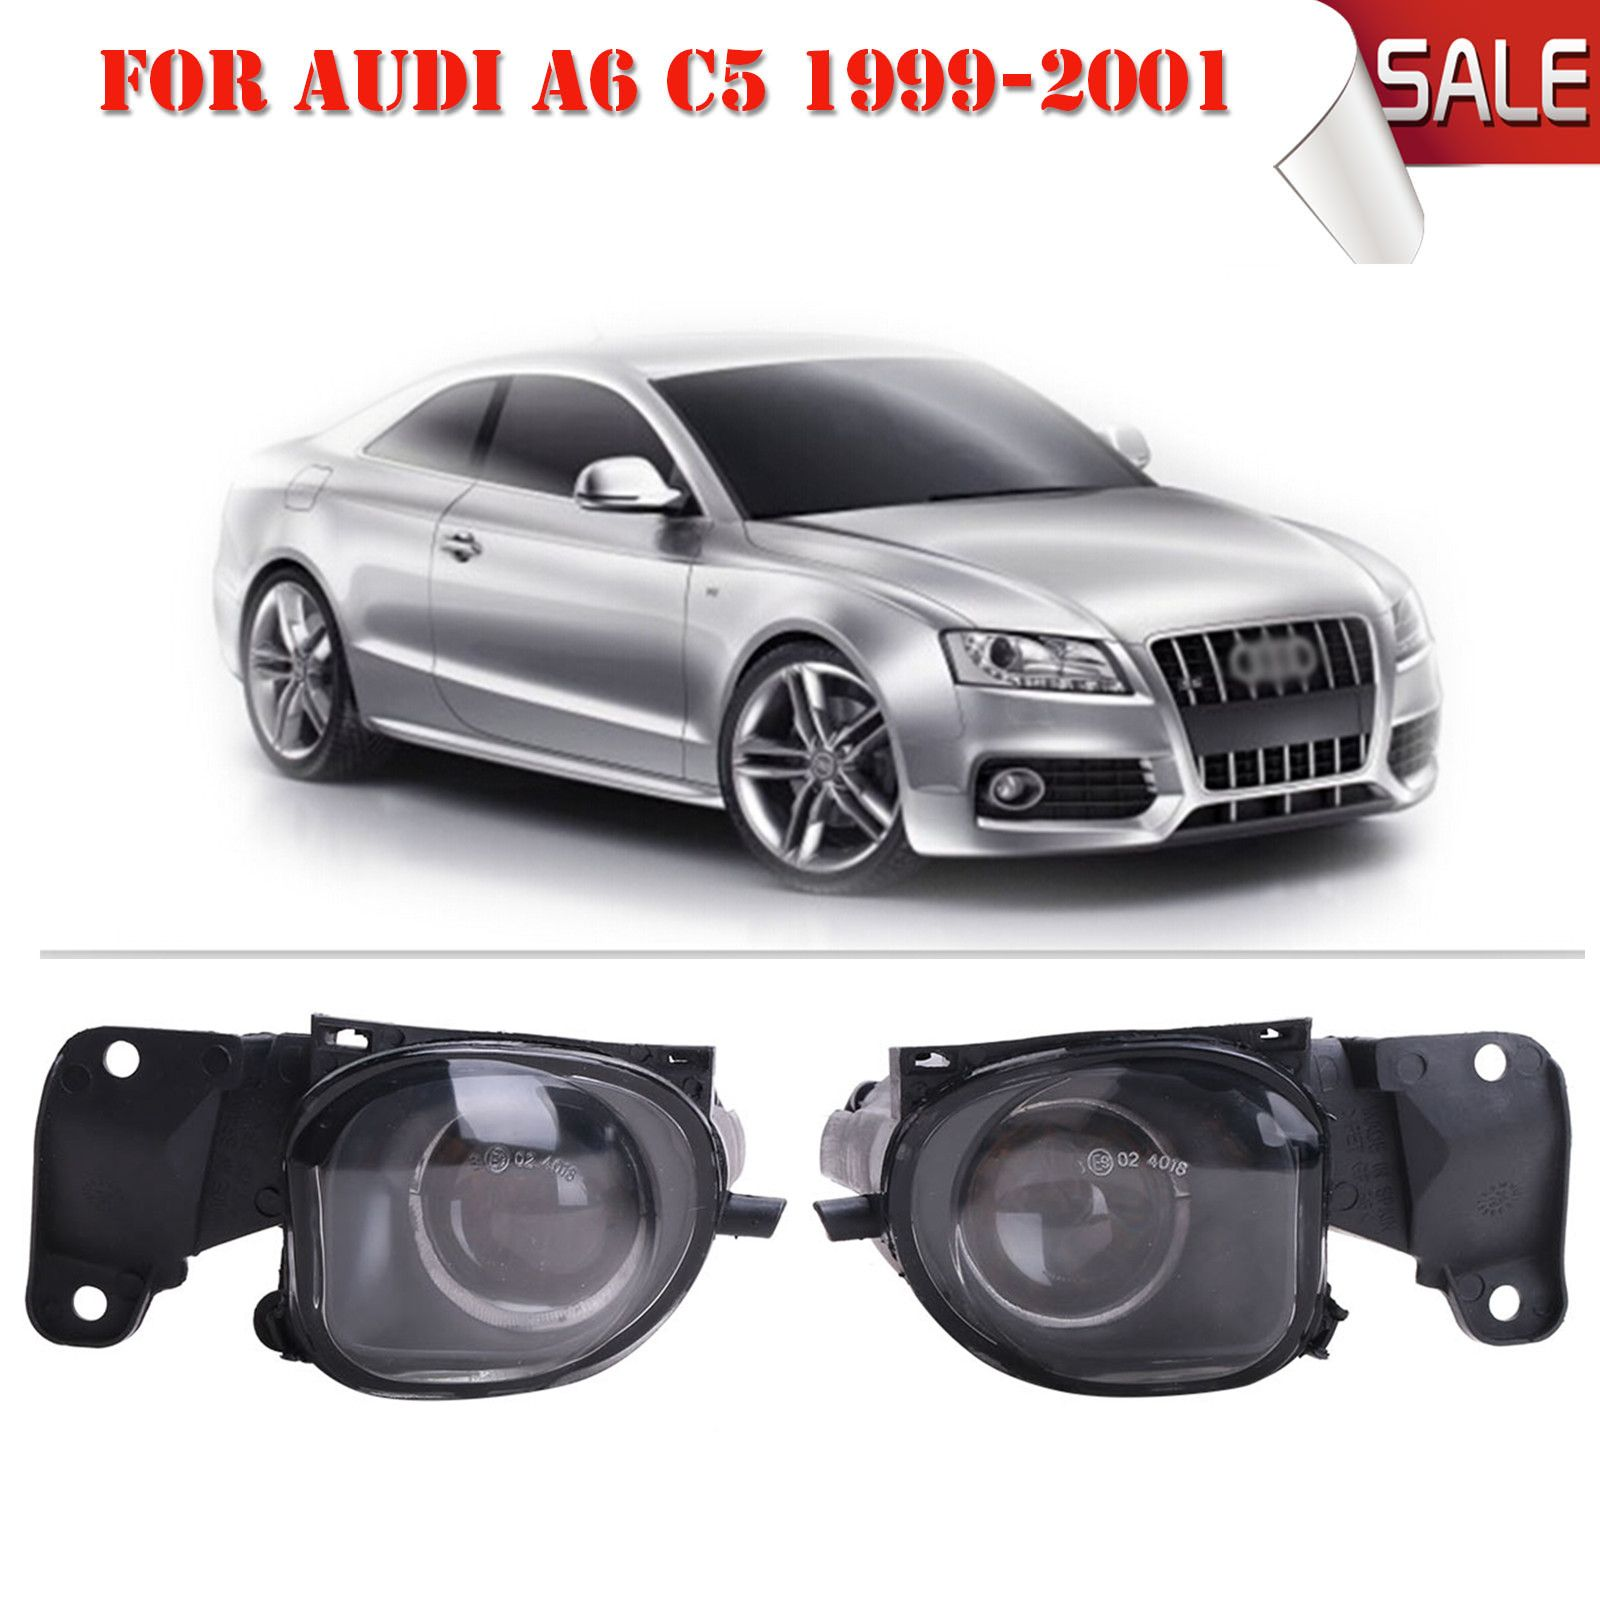 small resolution of oem 4b3941699a 2pcs for audi a6 s6 c5 4 2l 1999 2001 front bumper fog lights fog lamps with bulb h3 c 5